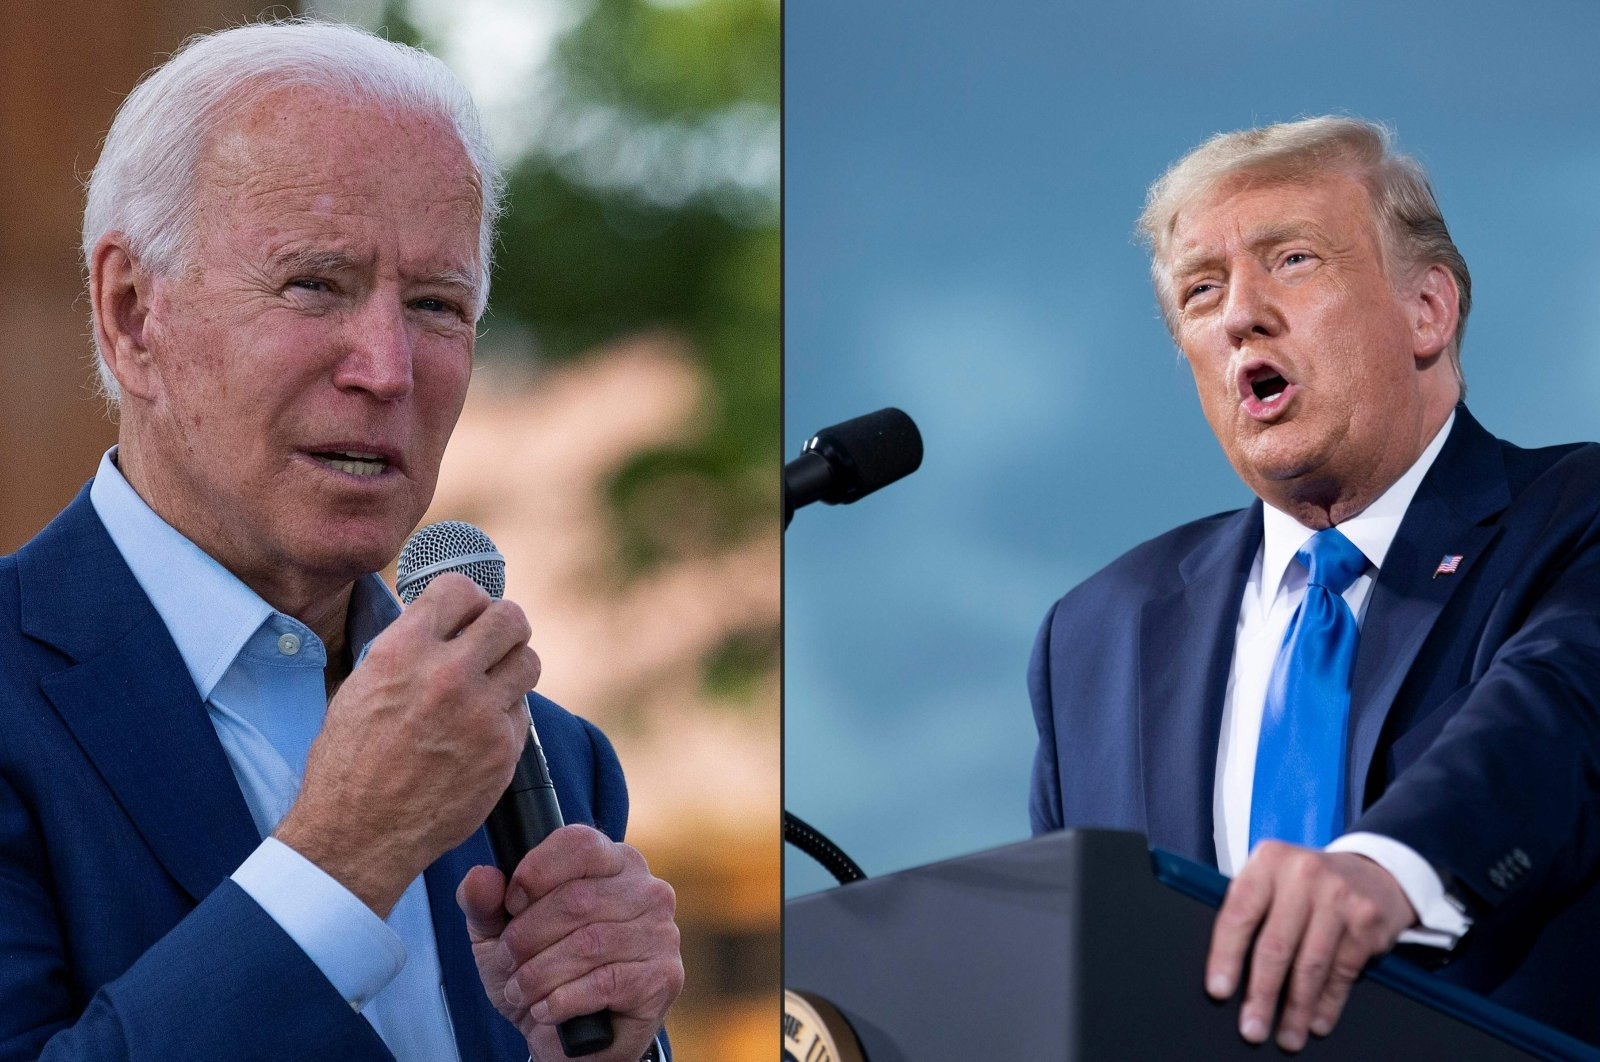 Democratic presidential candidate Joe Biden (L) speaks at the Black Economic Summit at Camp North End in Charlotte, North Carolina, Sept. 23, 2020. U.S. while President Donald Trump (R) speaks during a campaign rally at Cecil Airport in Jacksonville, Florida, Sept. 24, 2020. (AFP Photo)